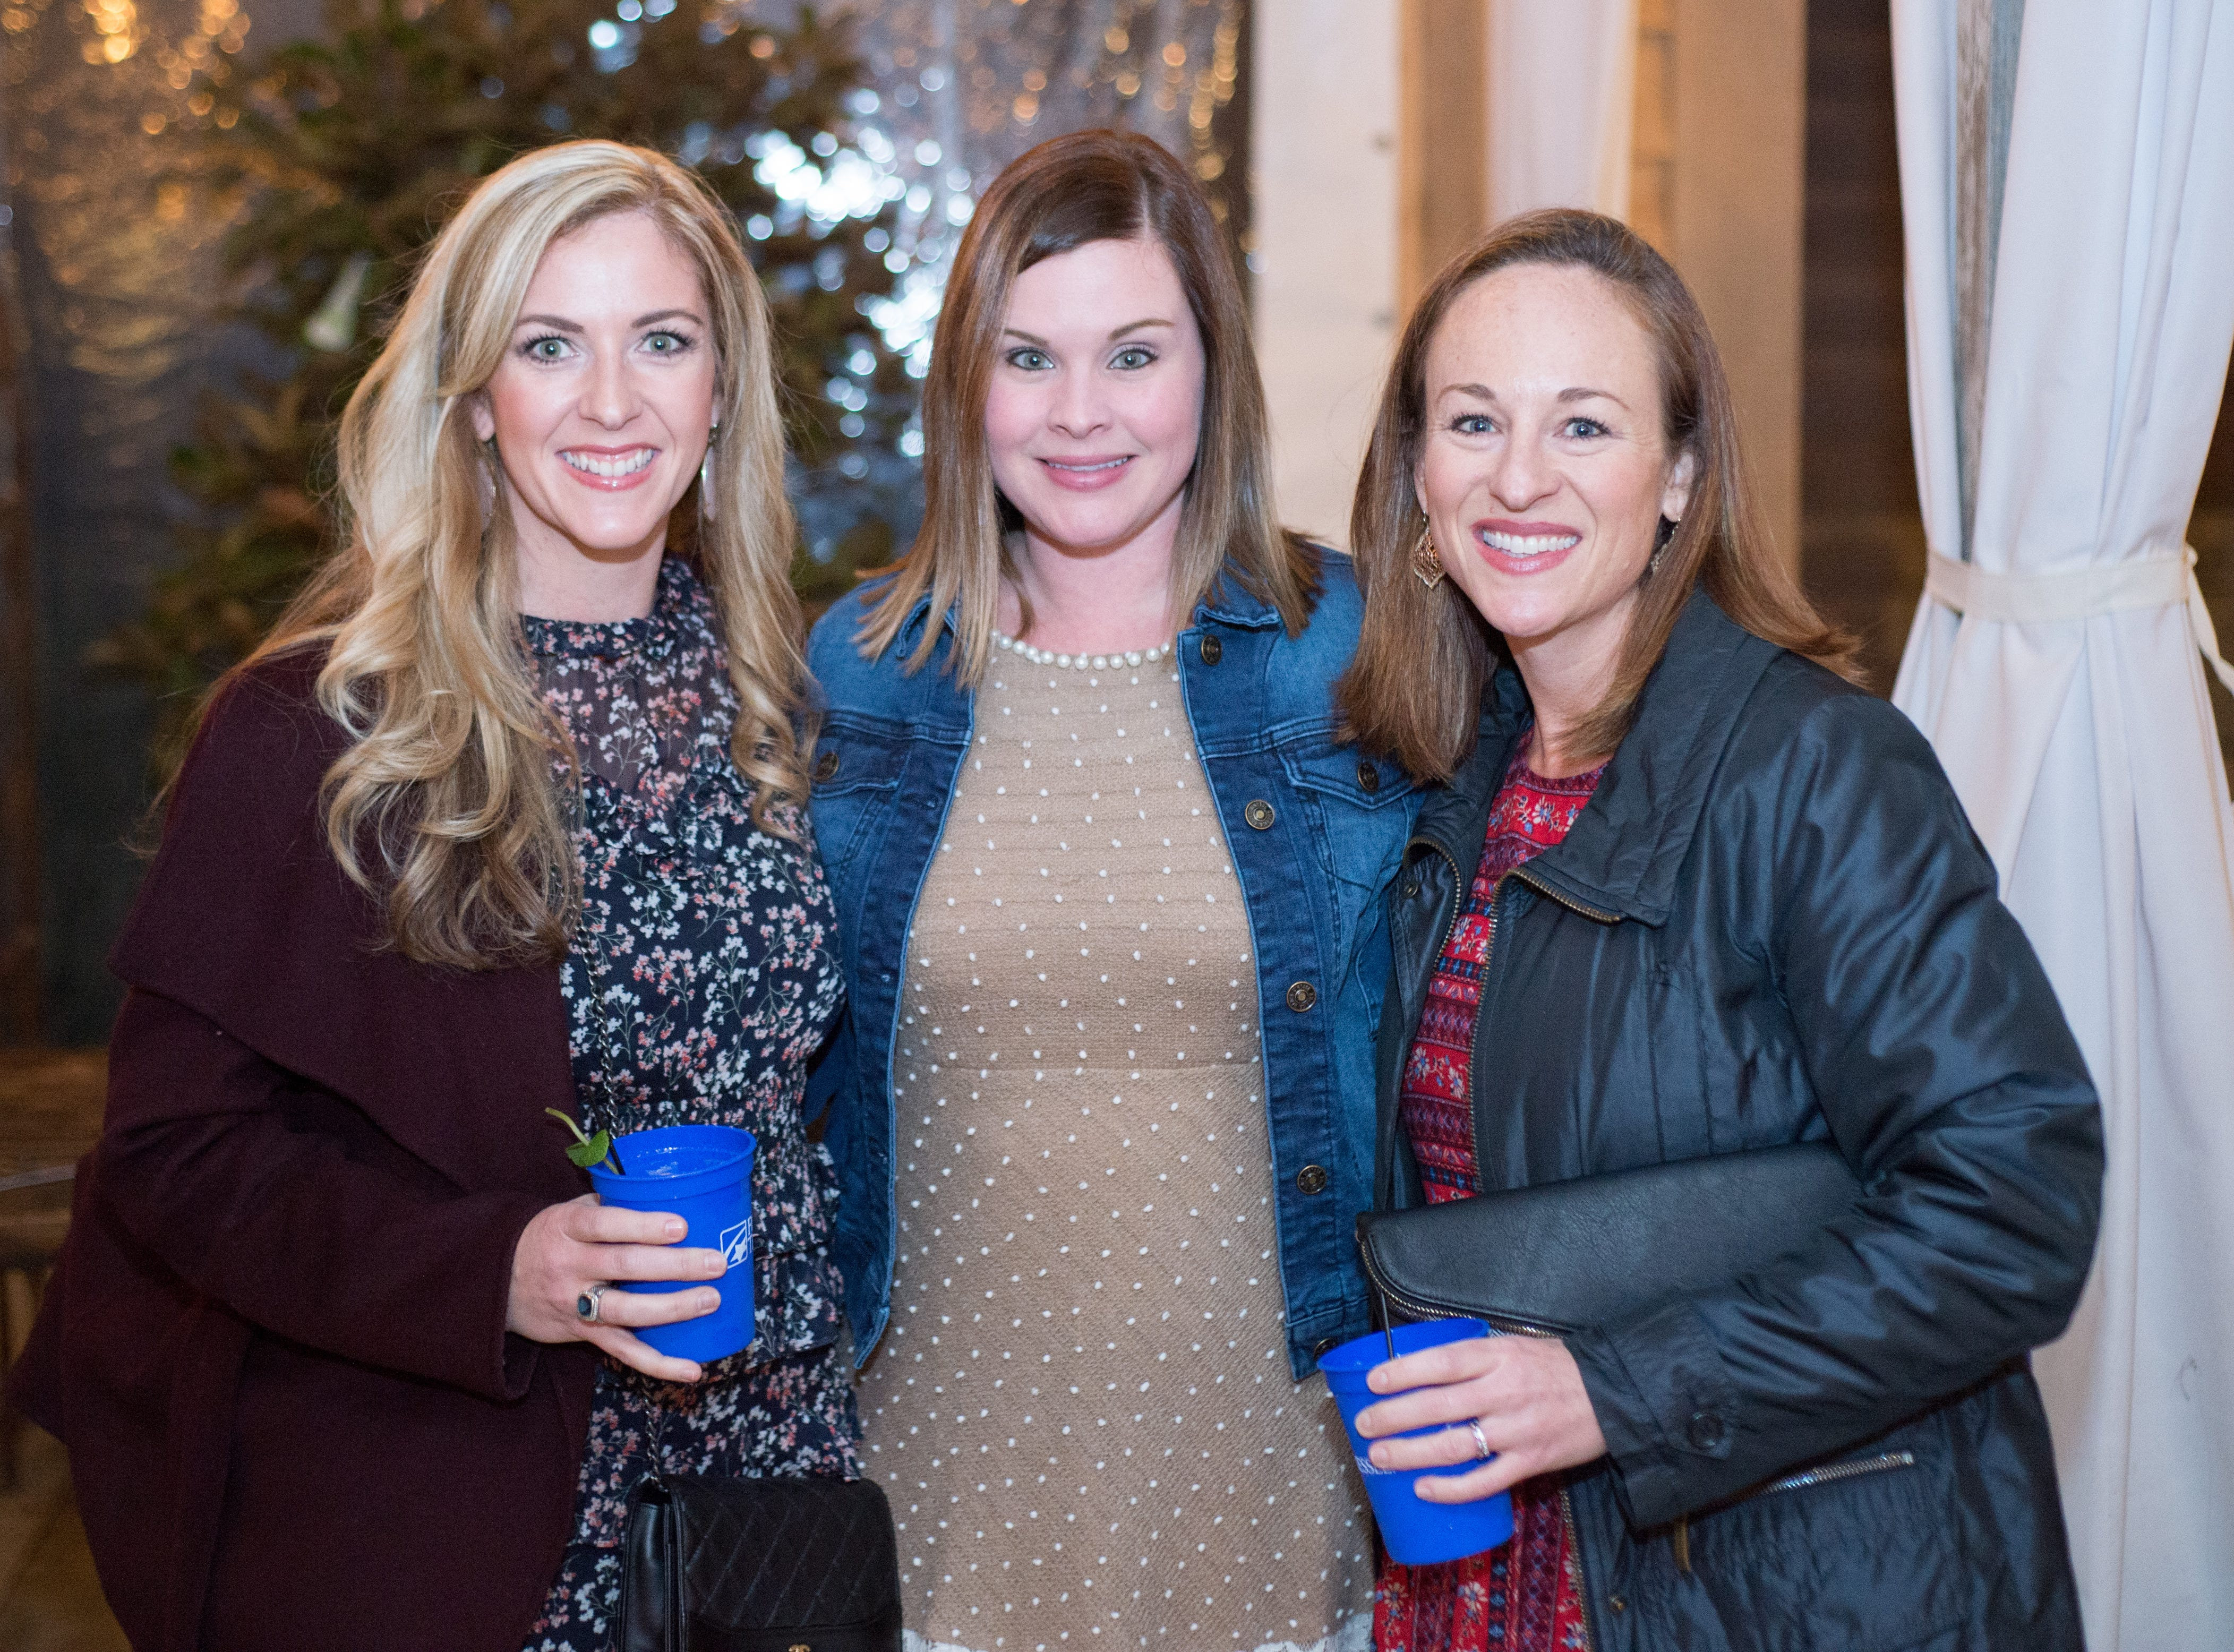 Susannah Wood, Jenny Slate Lee and Katherine Louw enjoy United Way of Sumner County's Bloomin' Bash Gala and Auction at Long Hollow Gardens in Gallatin on Friday, March 1.